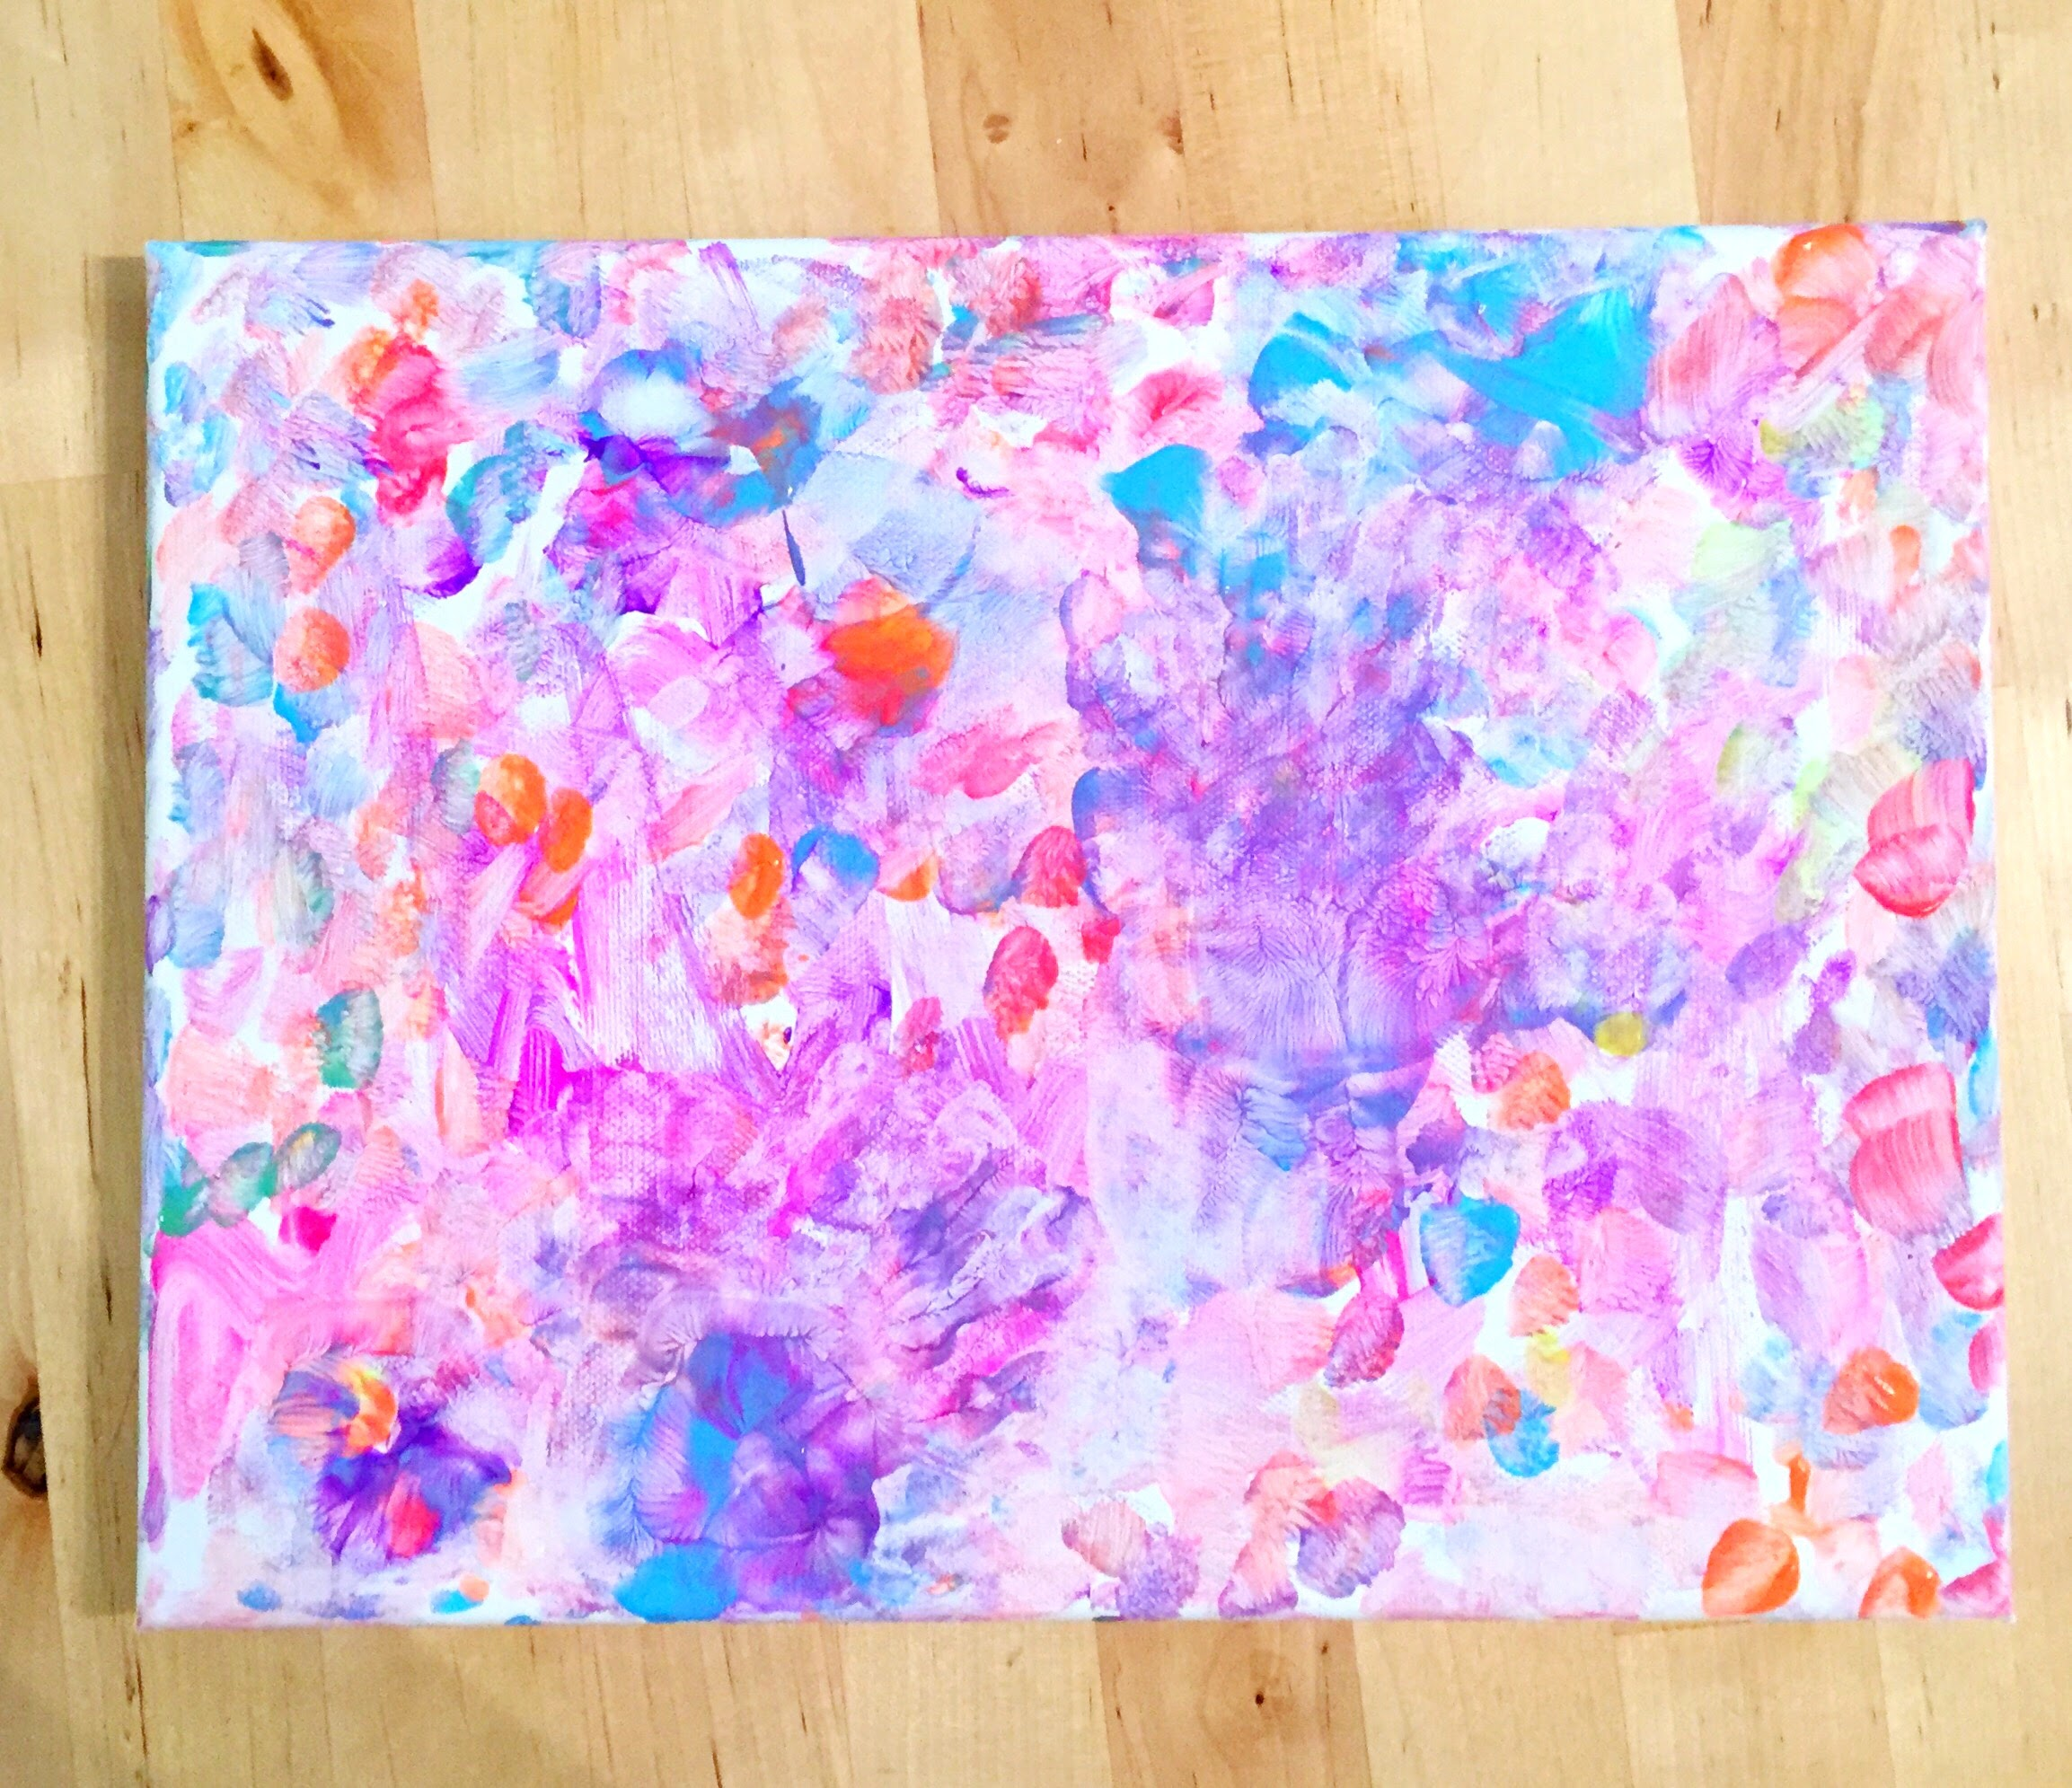 A little B and MOm original - Abstract Painting collaboration with my toddler (HOBBIES!)